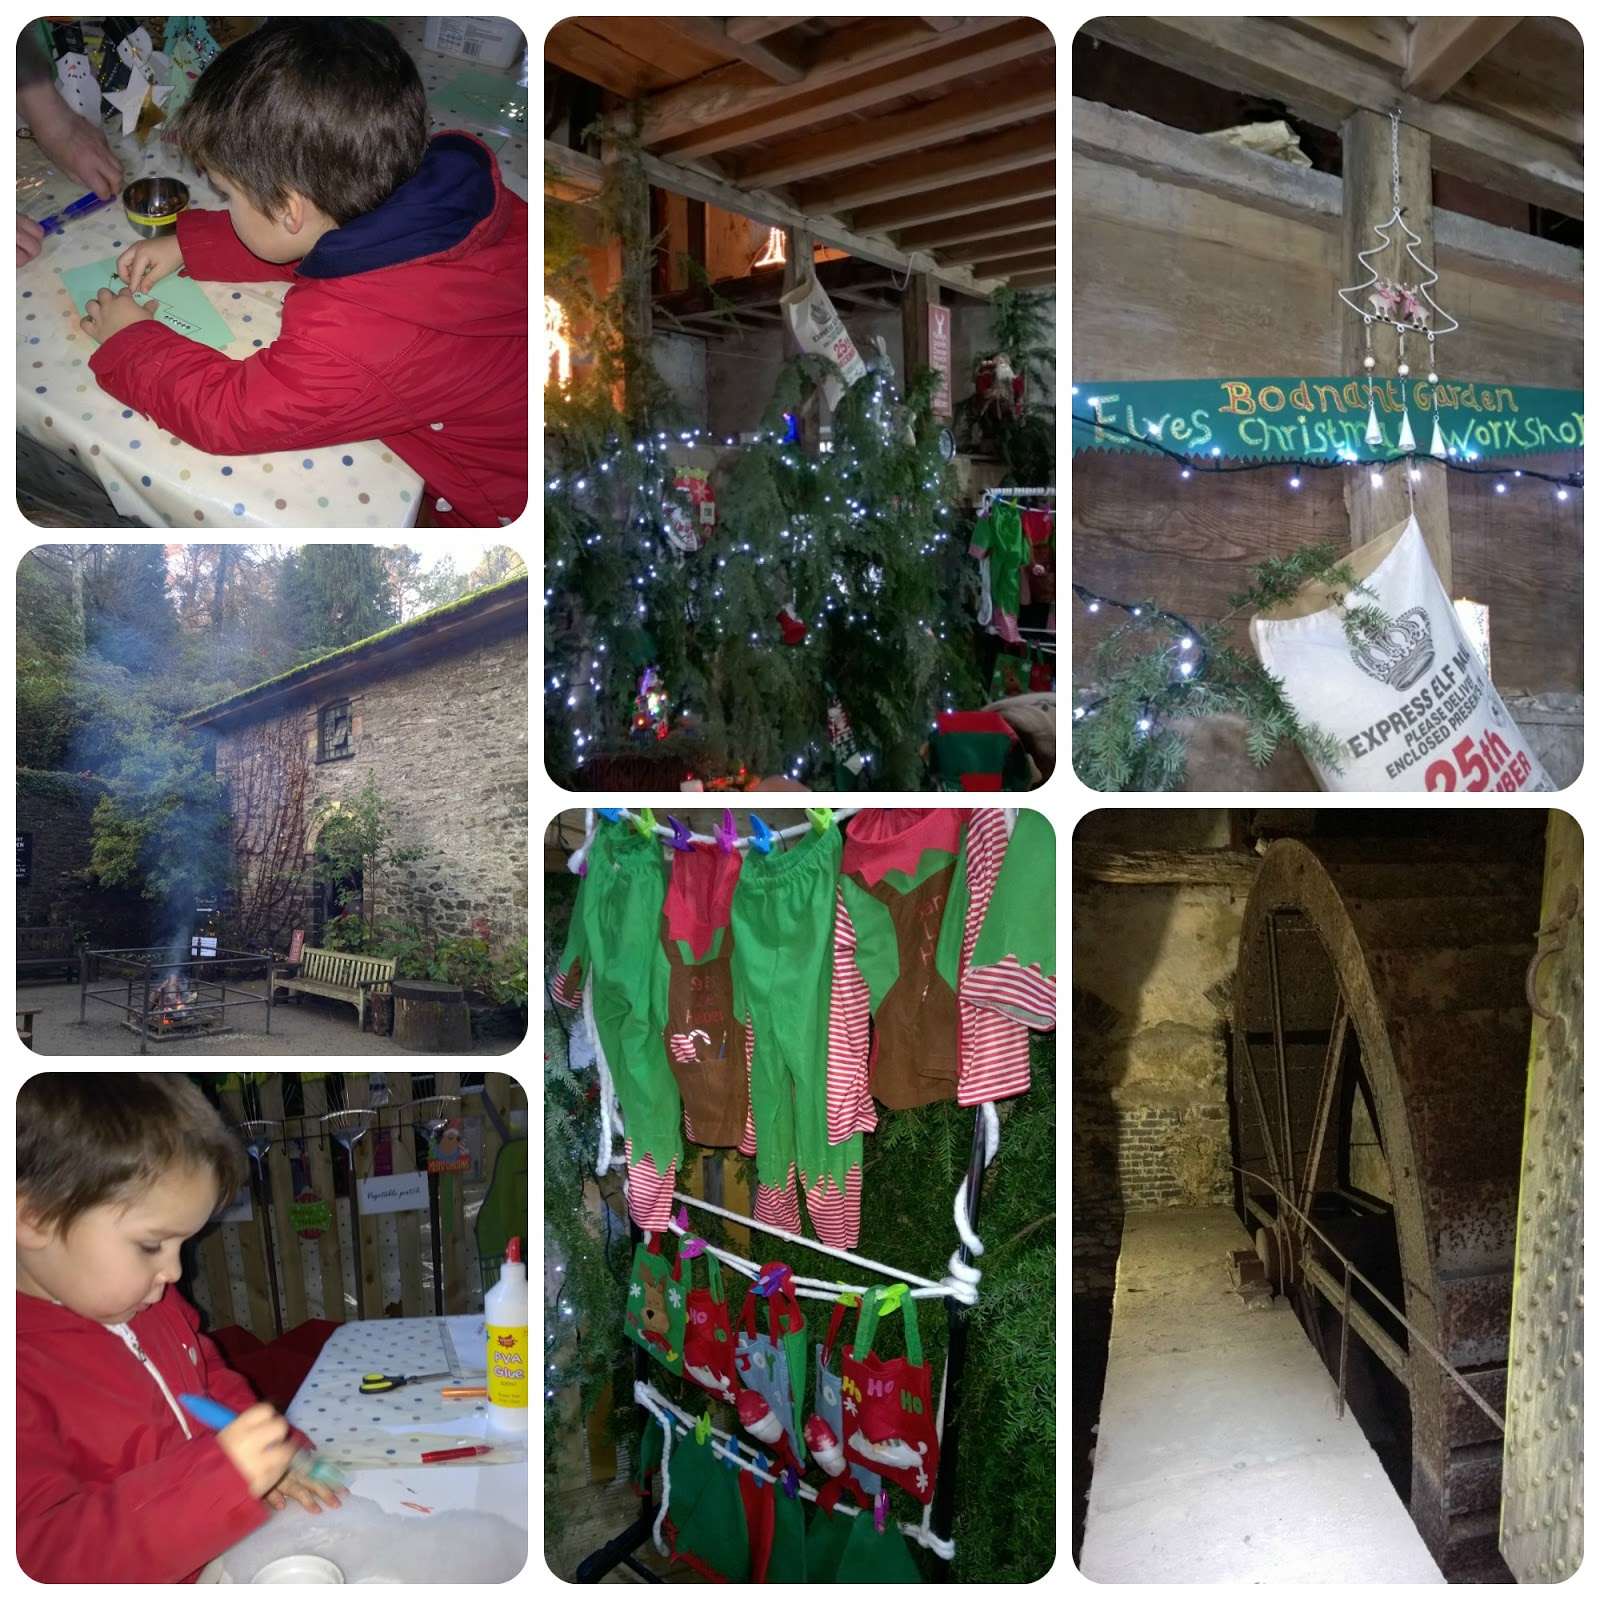 Bodnant Garden Elves Workshop